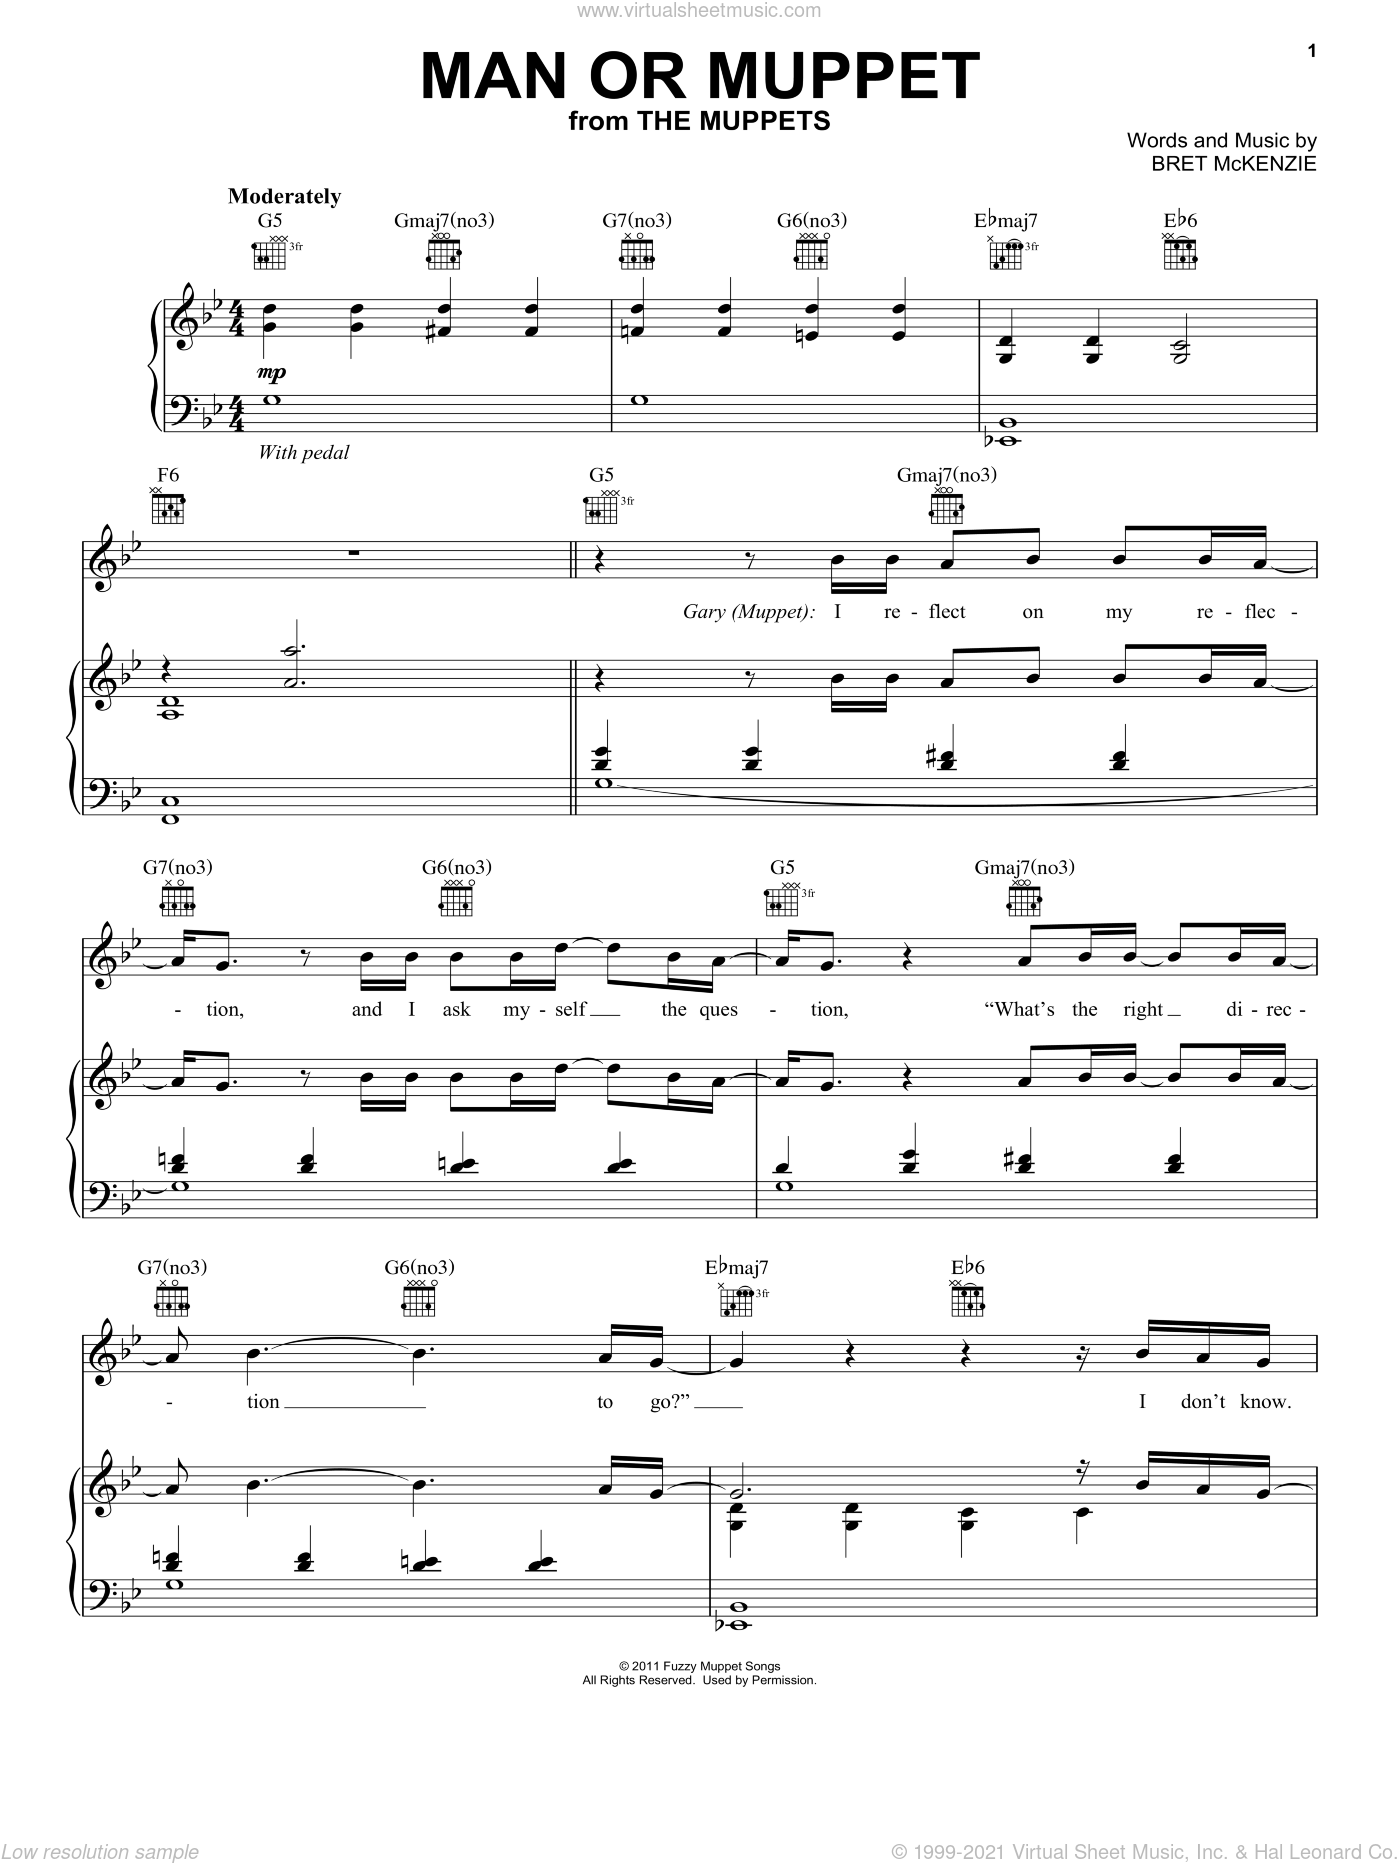 Man Or Muppet sheet music for voice, piano or guitar by Bret McKenzie